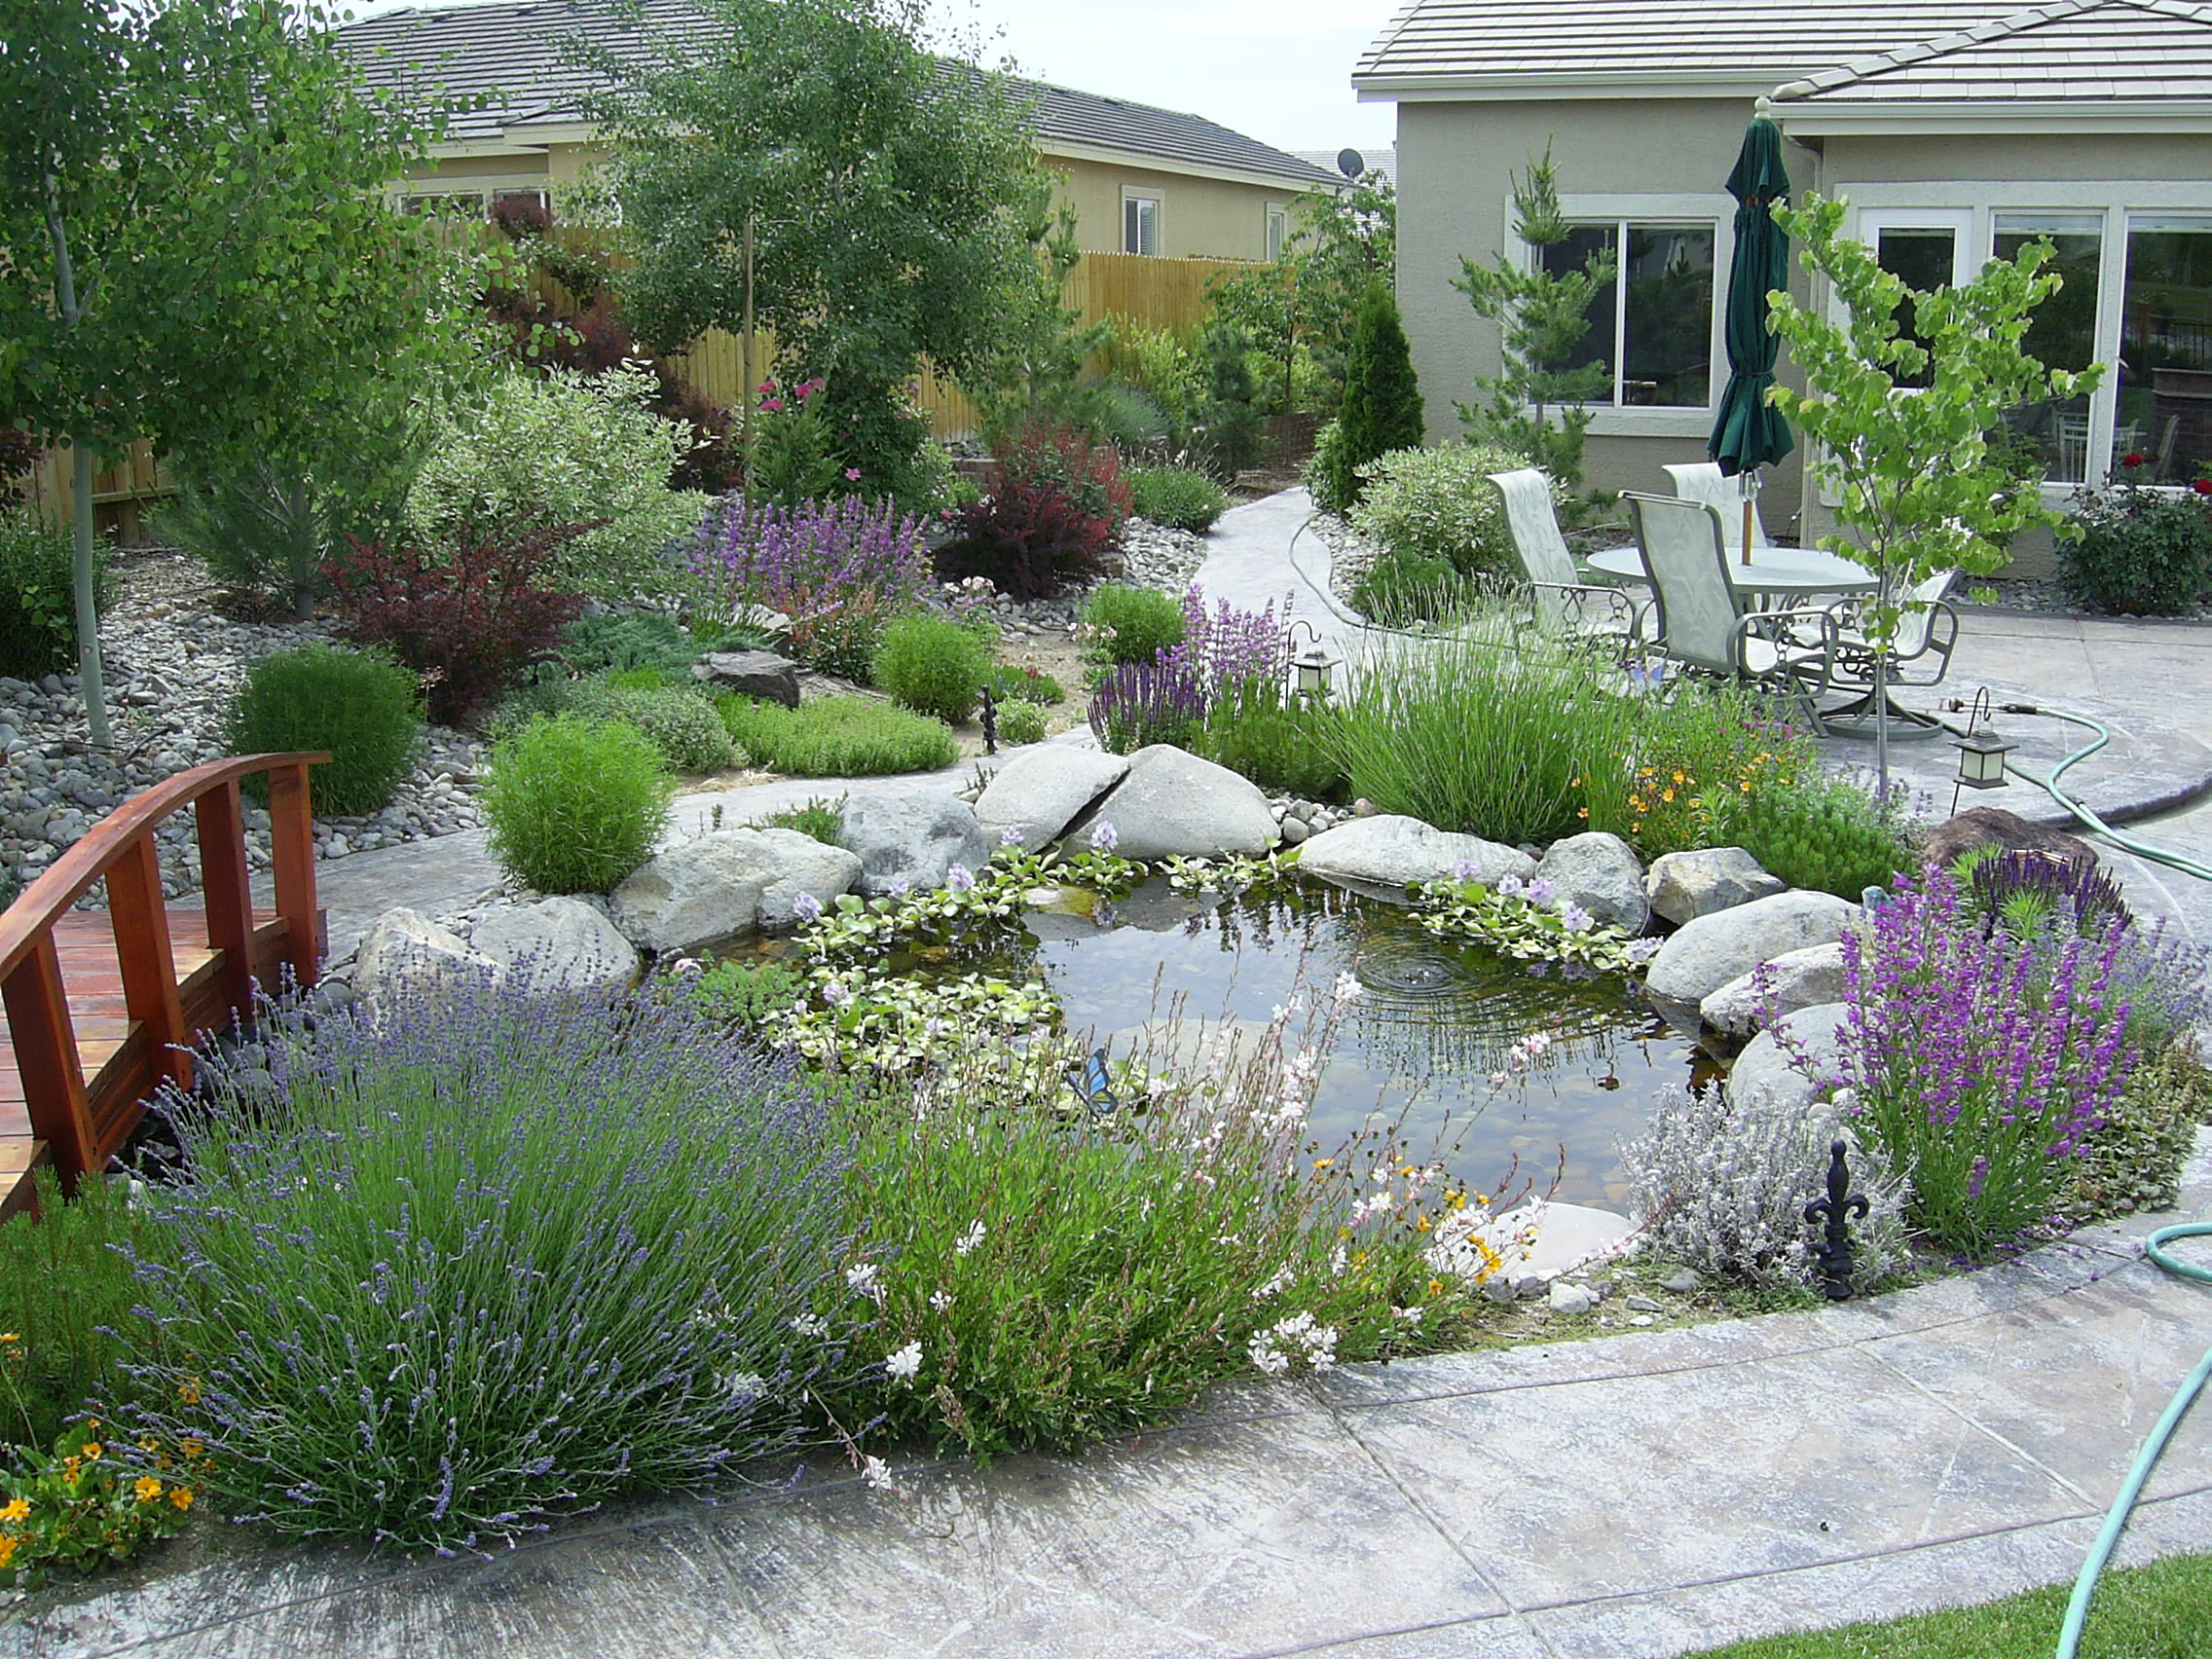 Landscape and garden design implications of water for In the garden landscape and design